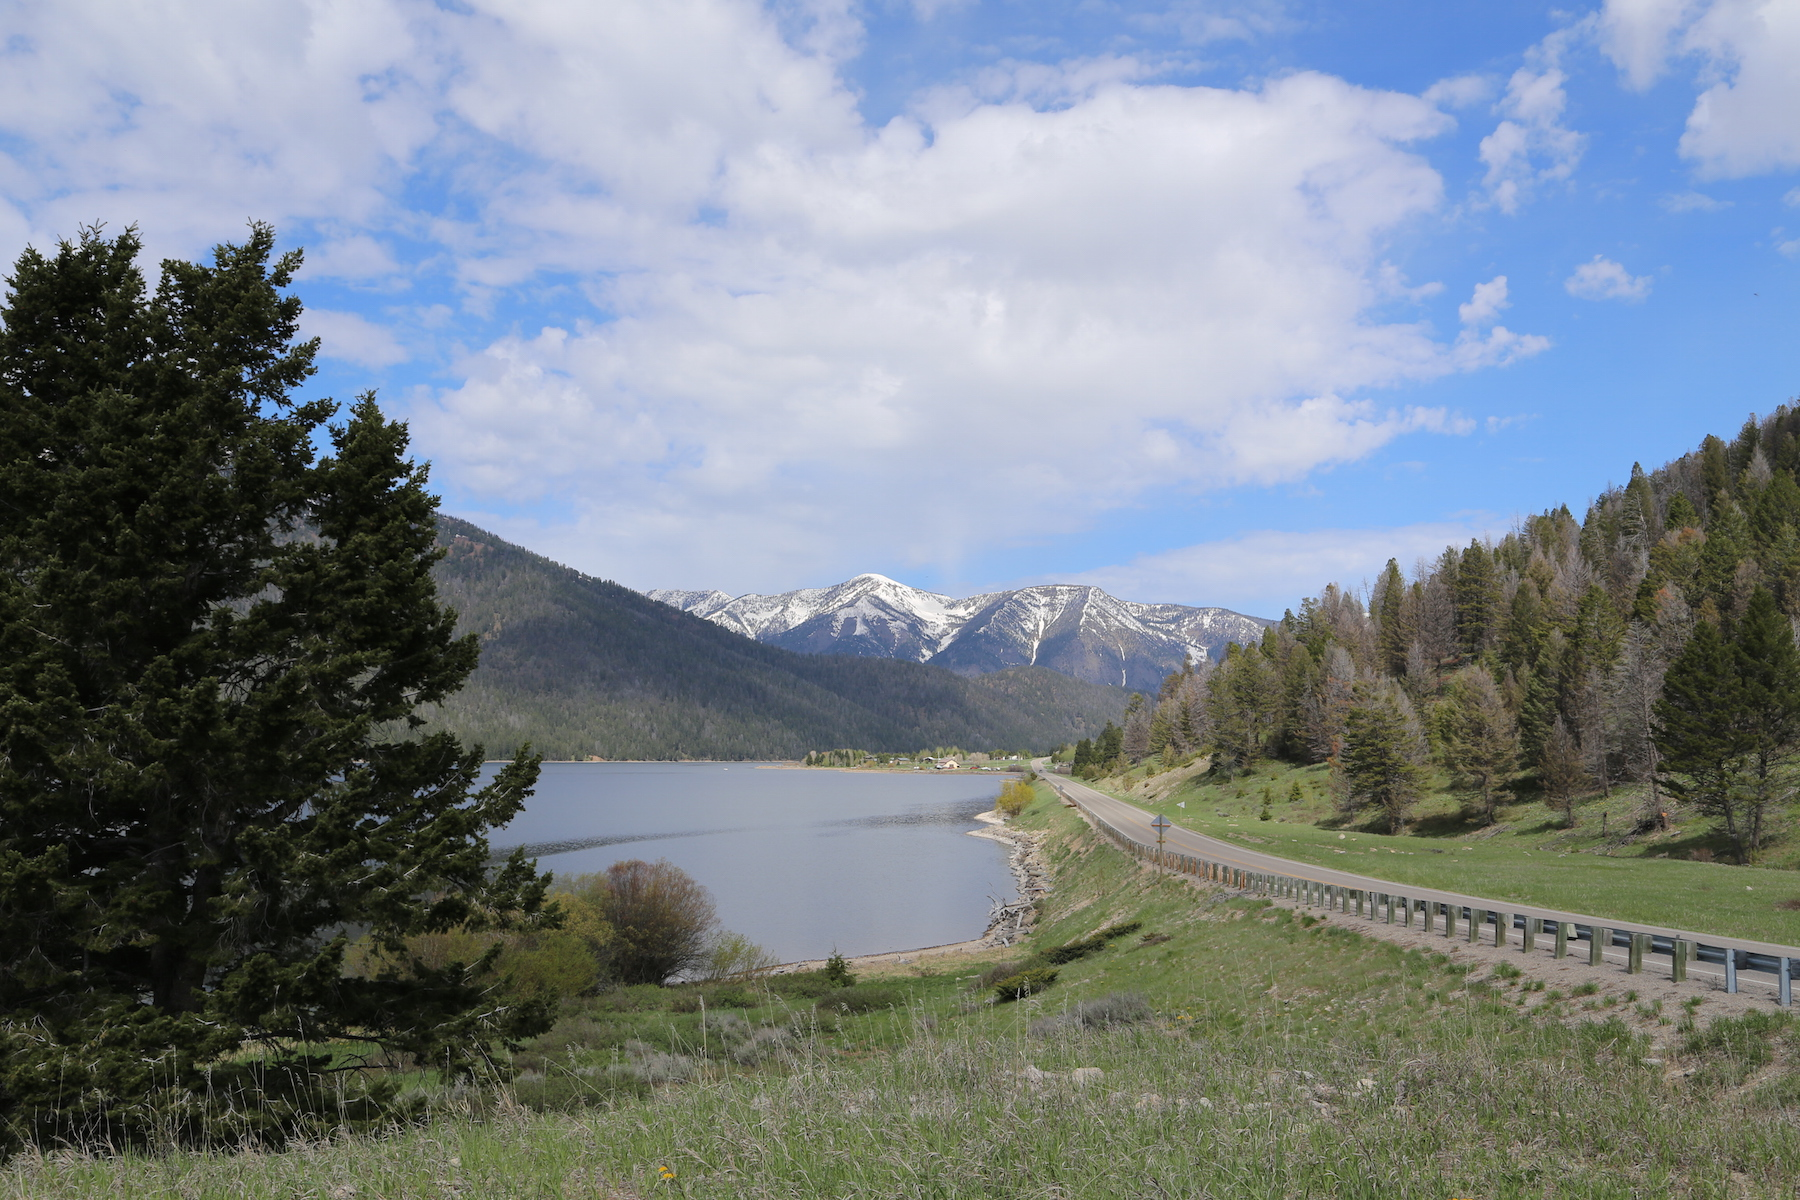 Property For Sale at Hebgen Lake Estates near Yellowstone Park